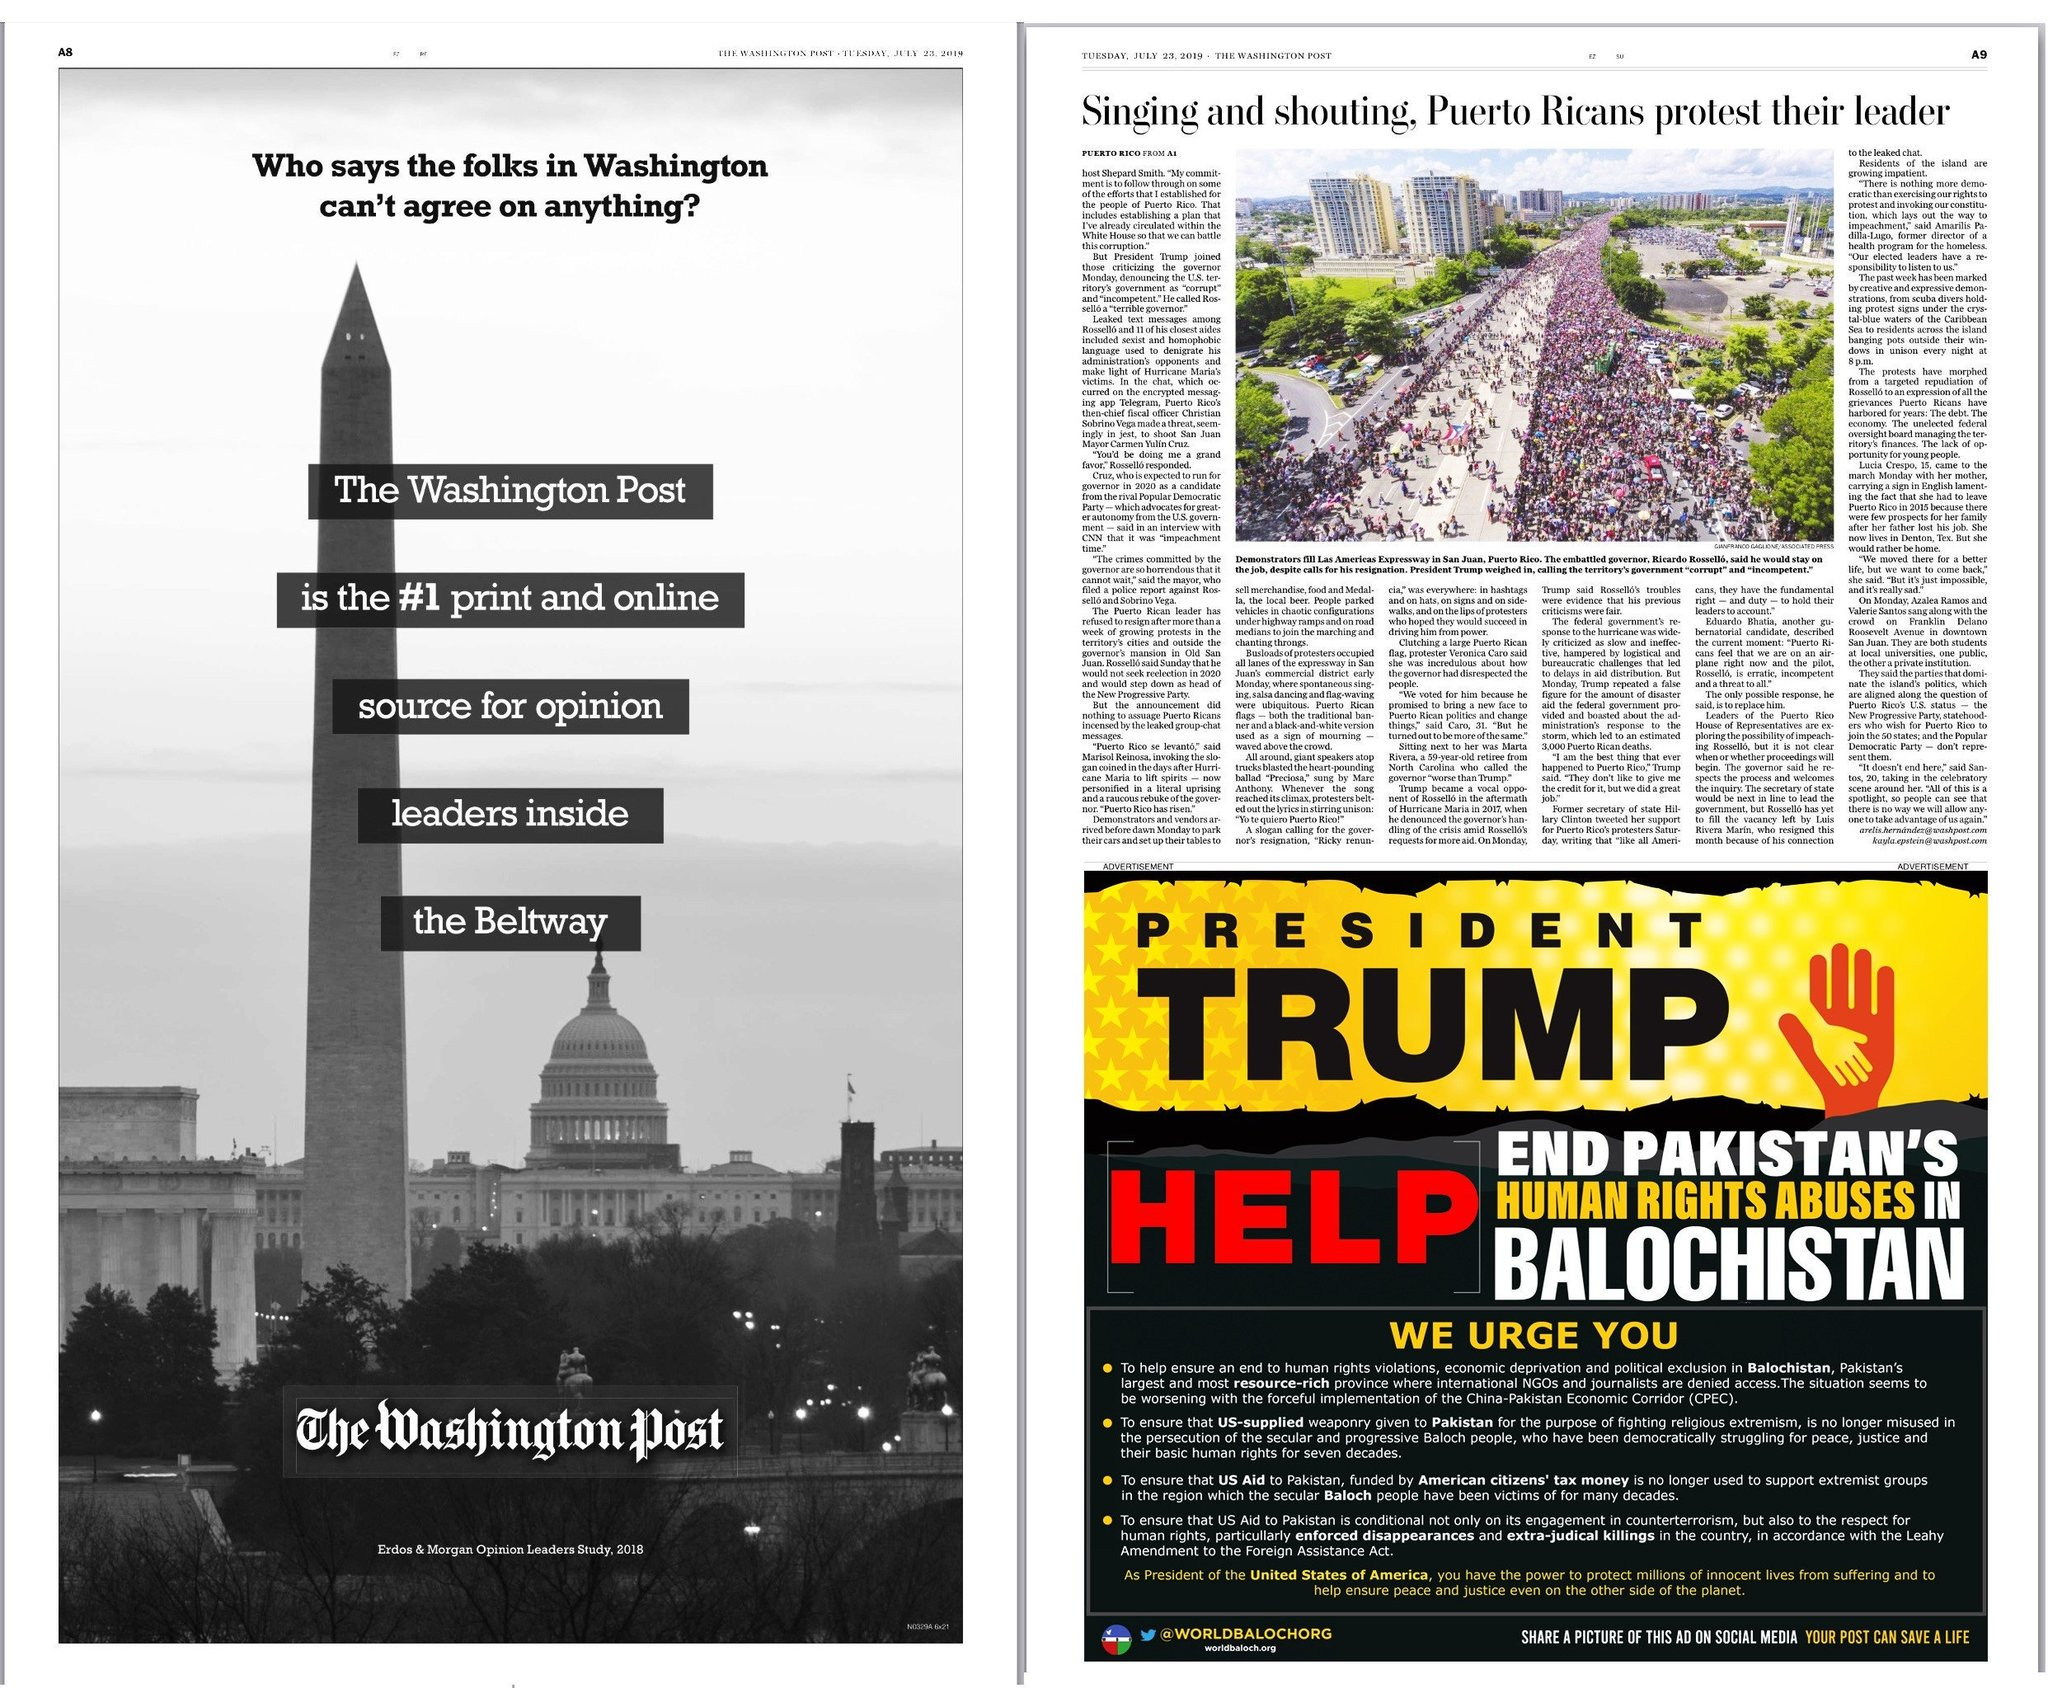 An advertisement in the Washington Post newspaper urging Trump to help end human rights abuses in Balochistan